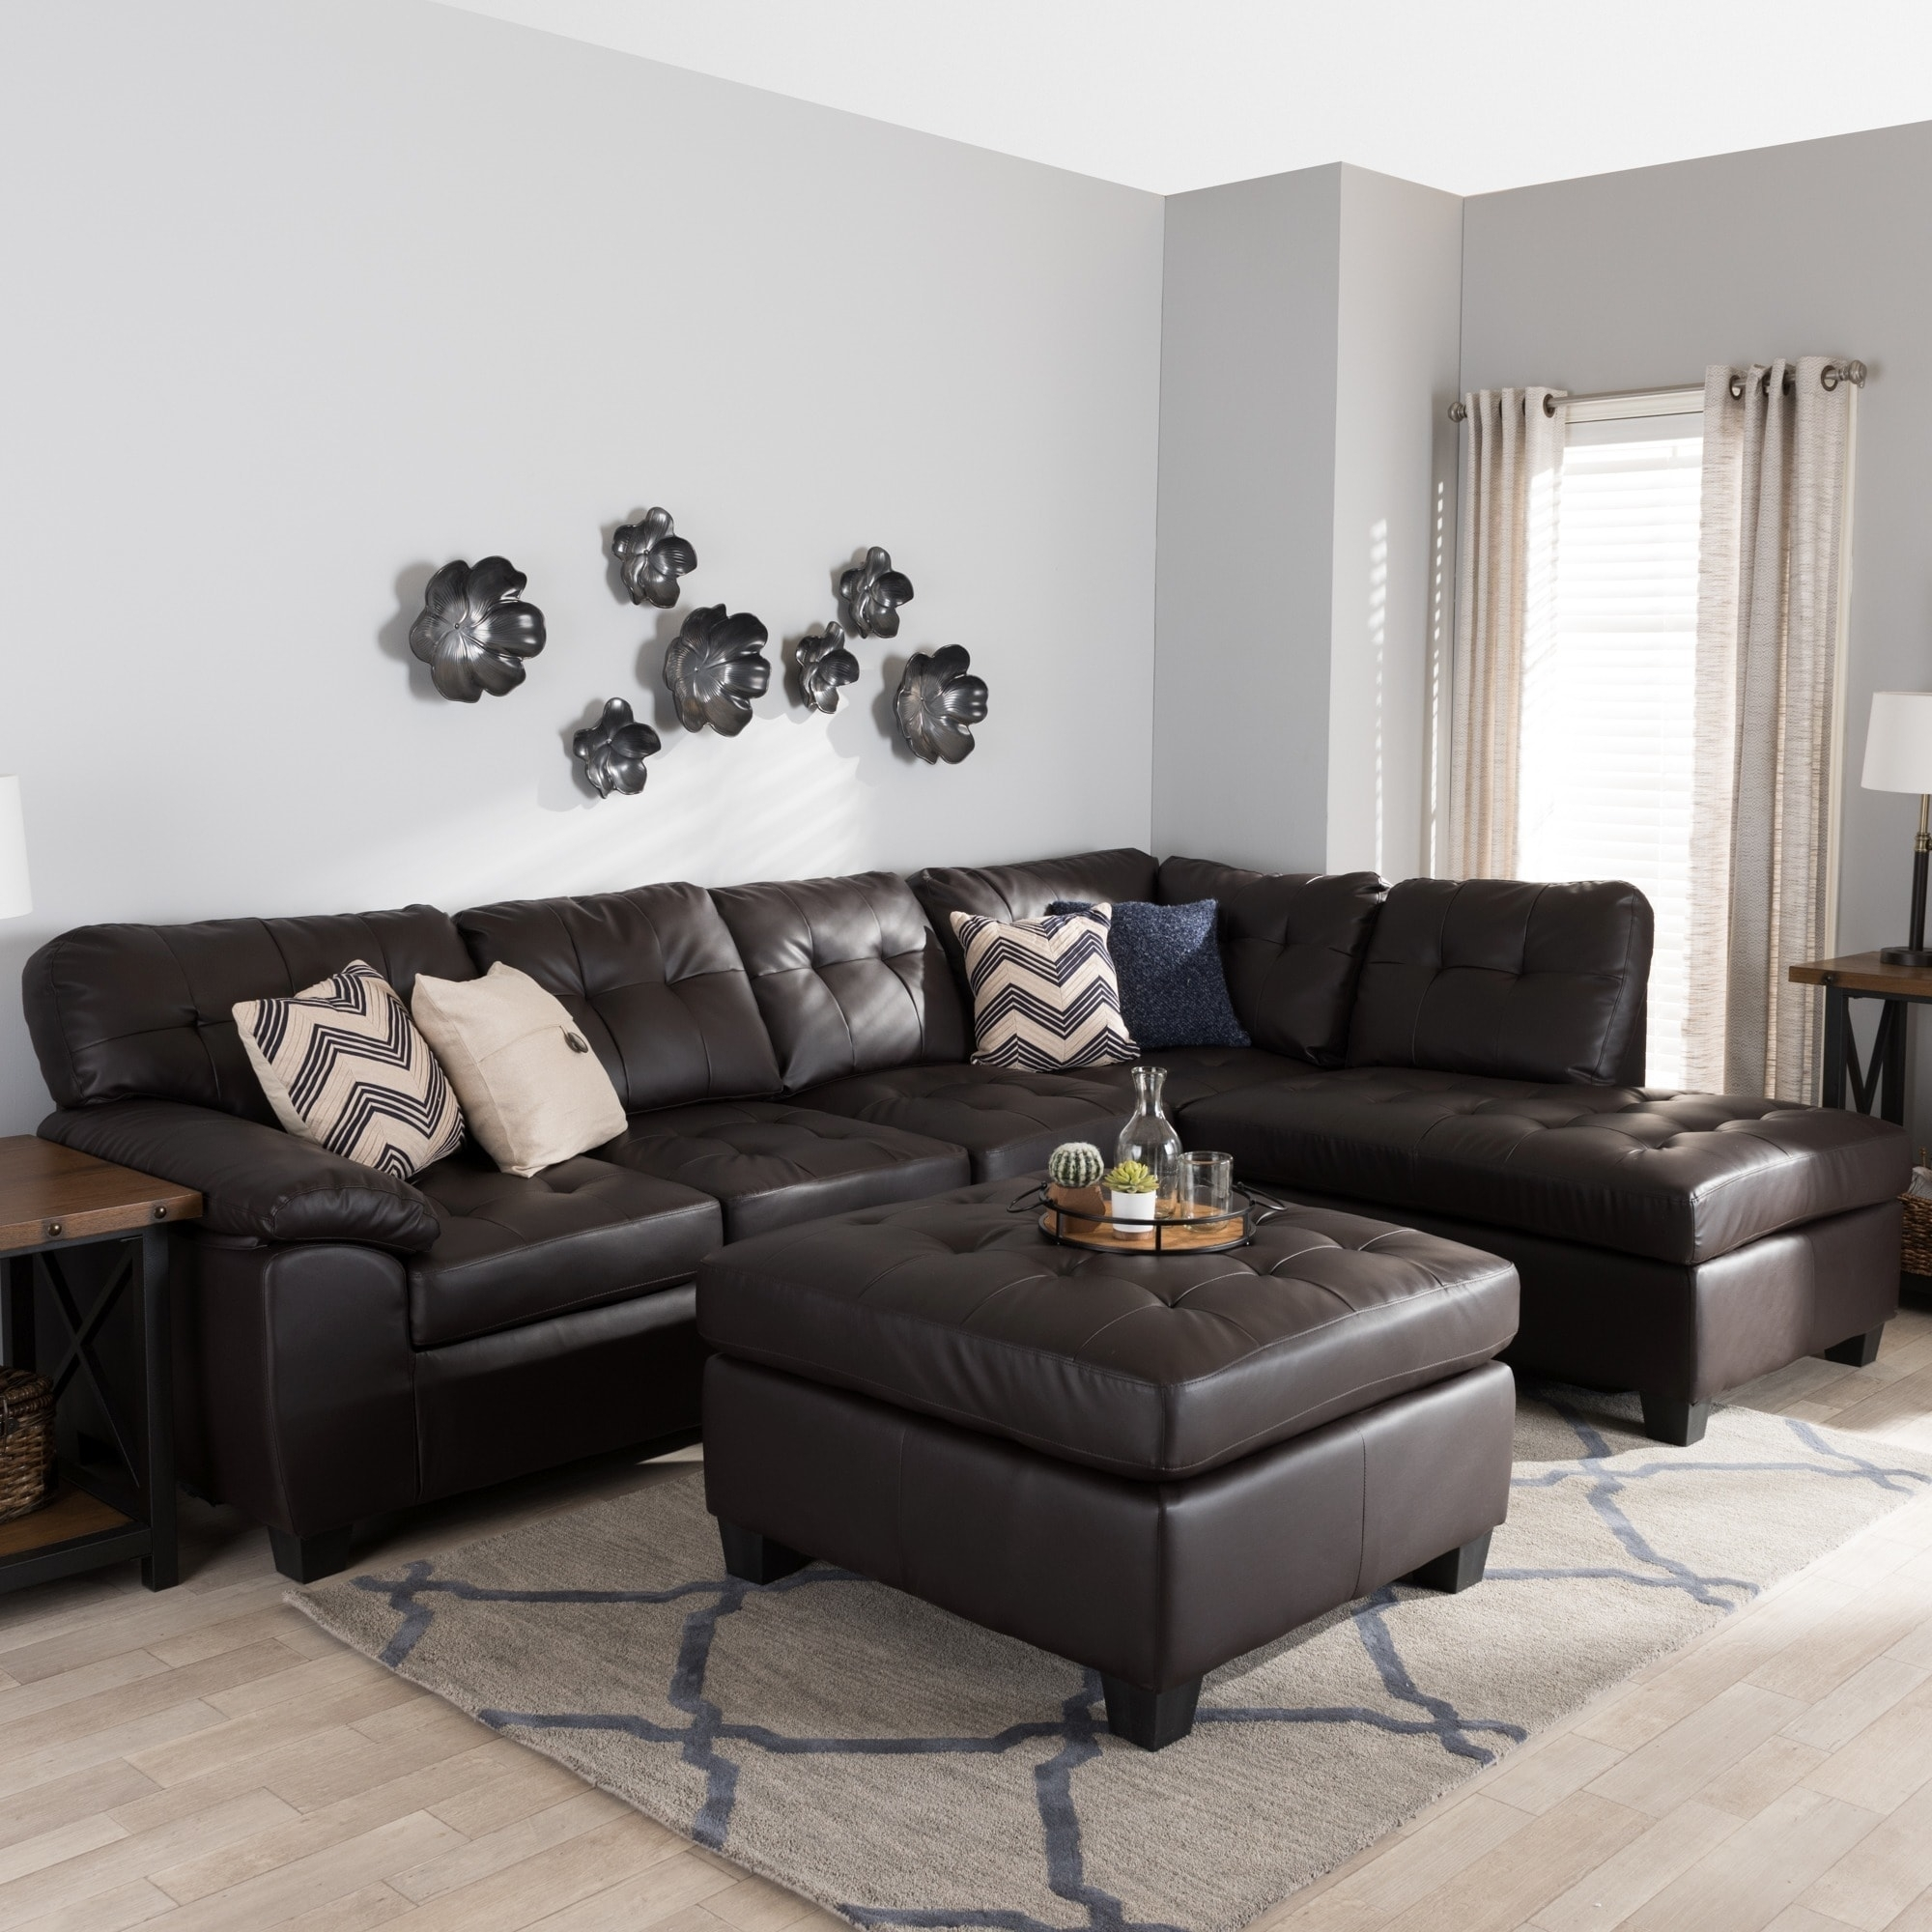 Baxton Studio 'mario' Brown Leather Sectional Sofa With Ottoman for Leather Sectionals With Ottoman (Image 2 of 15)